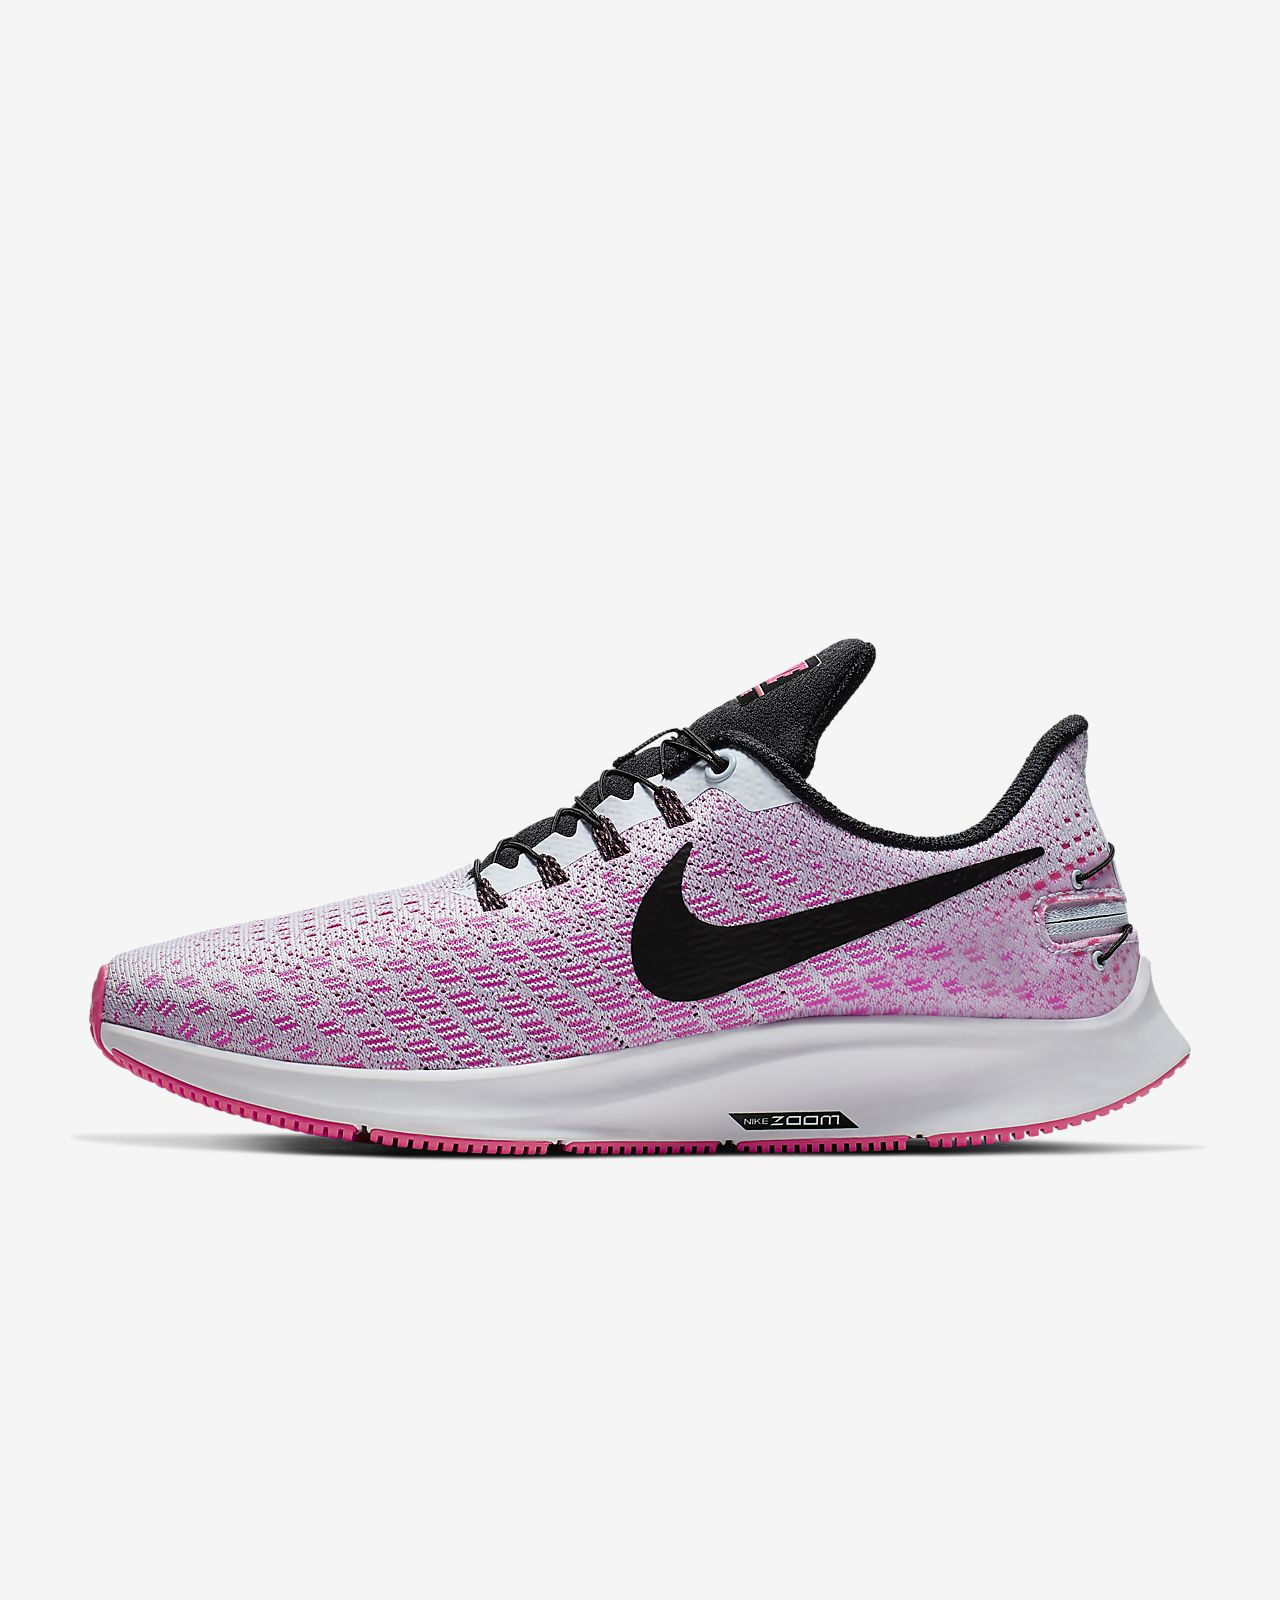 info for 1938c dd724 ... Chaussure de running Nike Air Zoom Pegasus 35 FlyEase pour Femme (large)